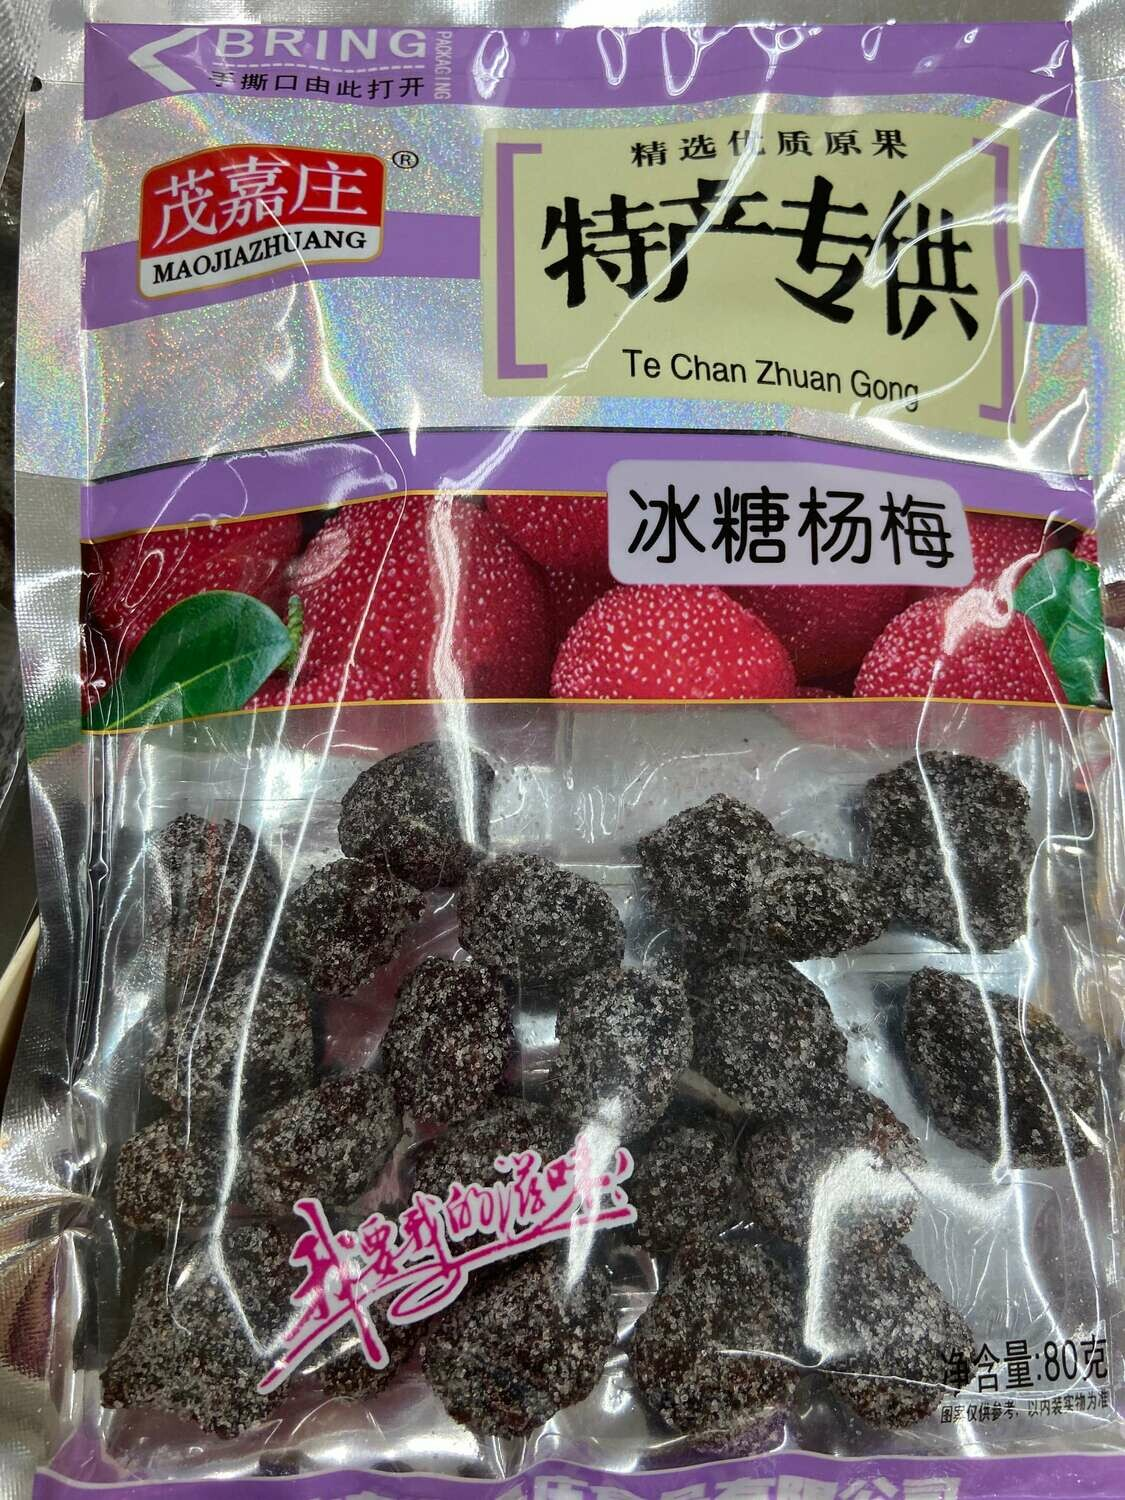 【RG】Rock Candy Waxberry 冰糖杨梅 80g